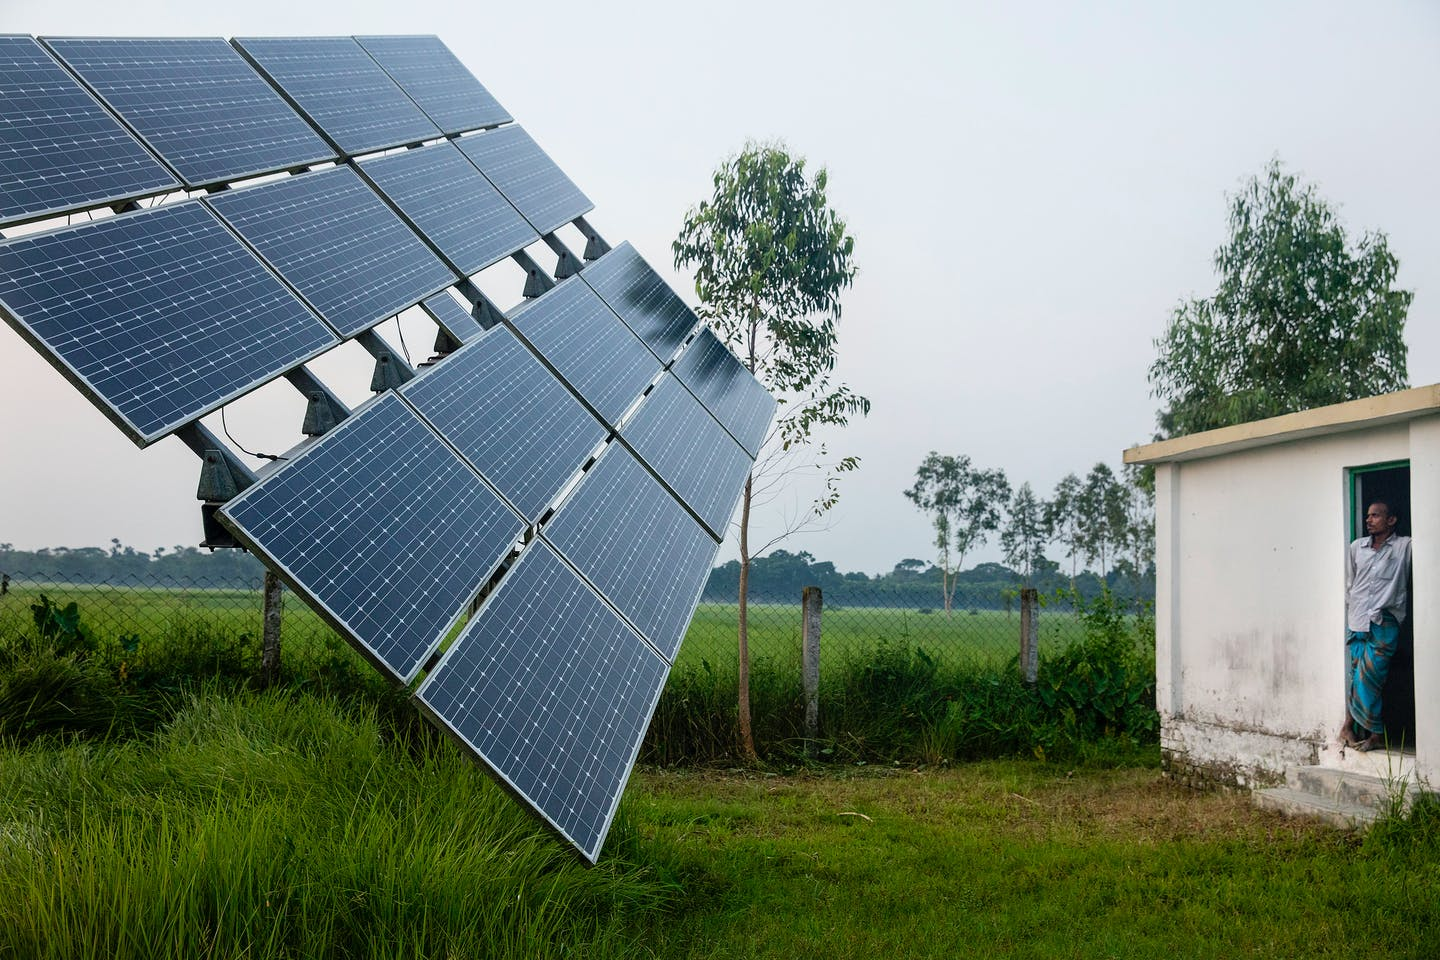 Solar power irrigation in Bangladesh